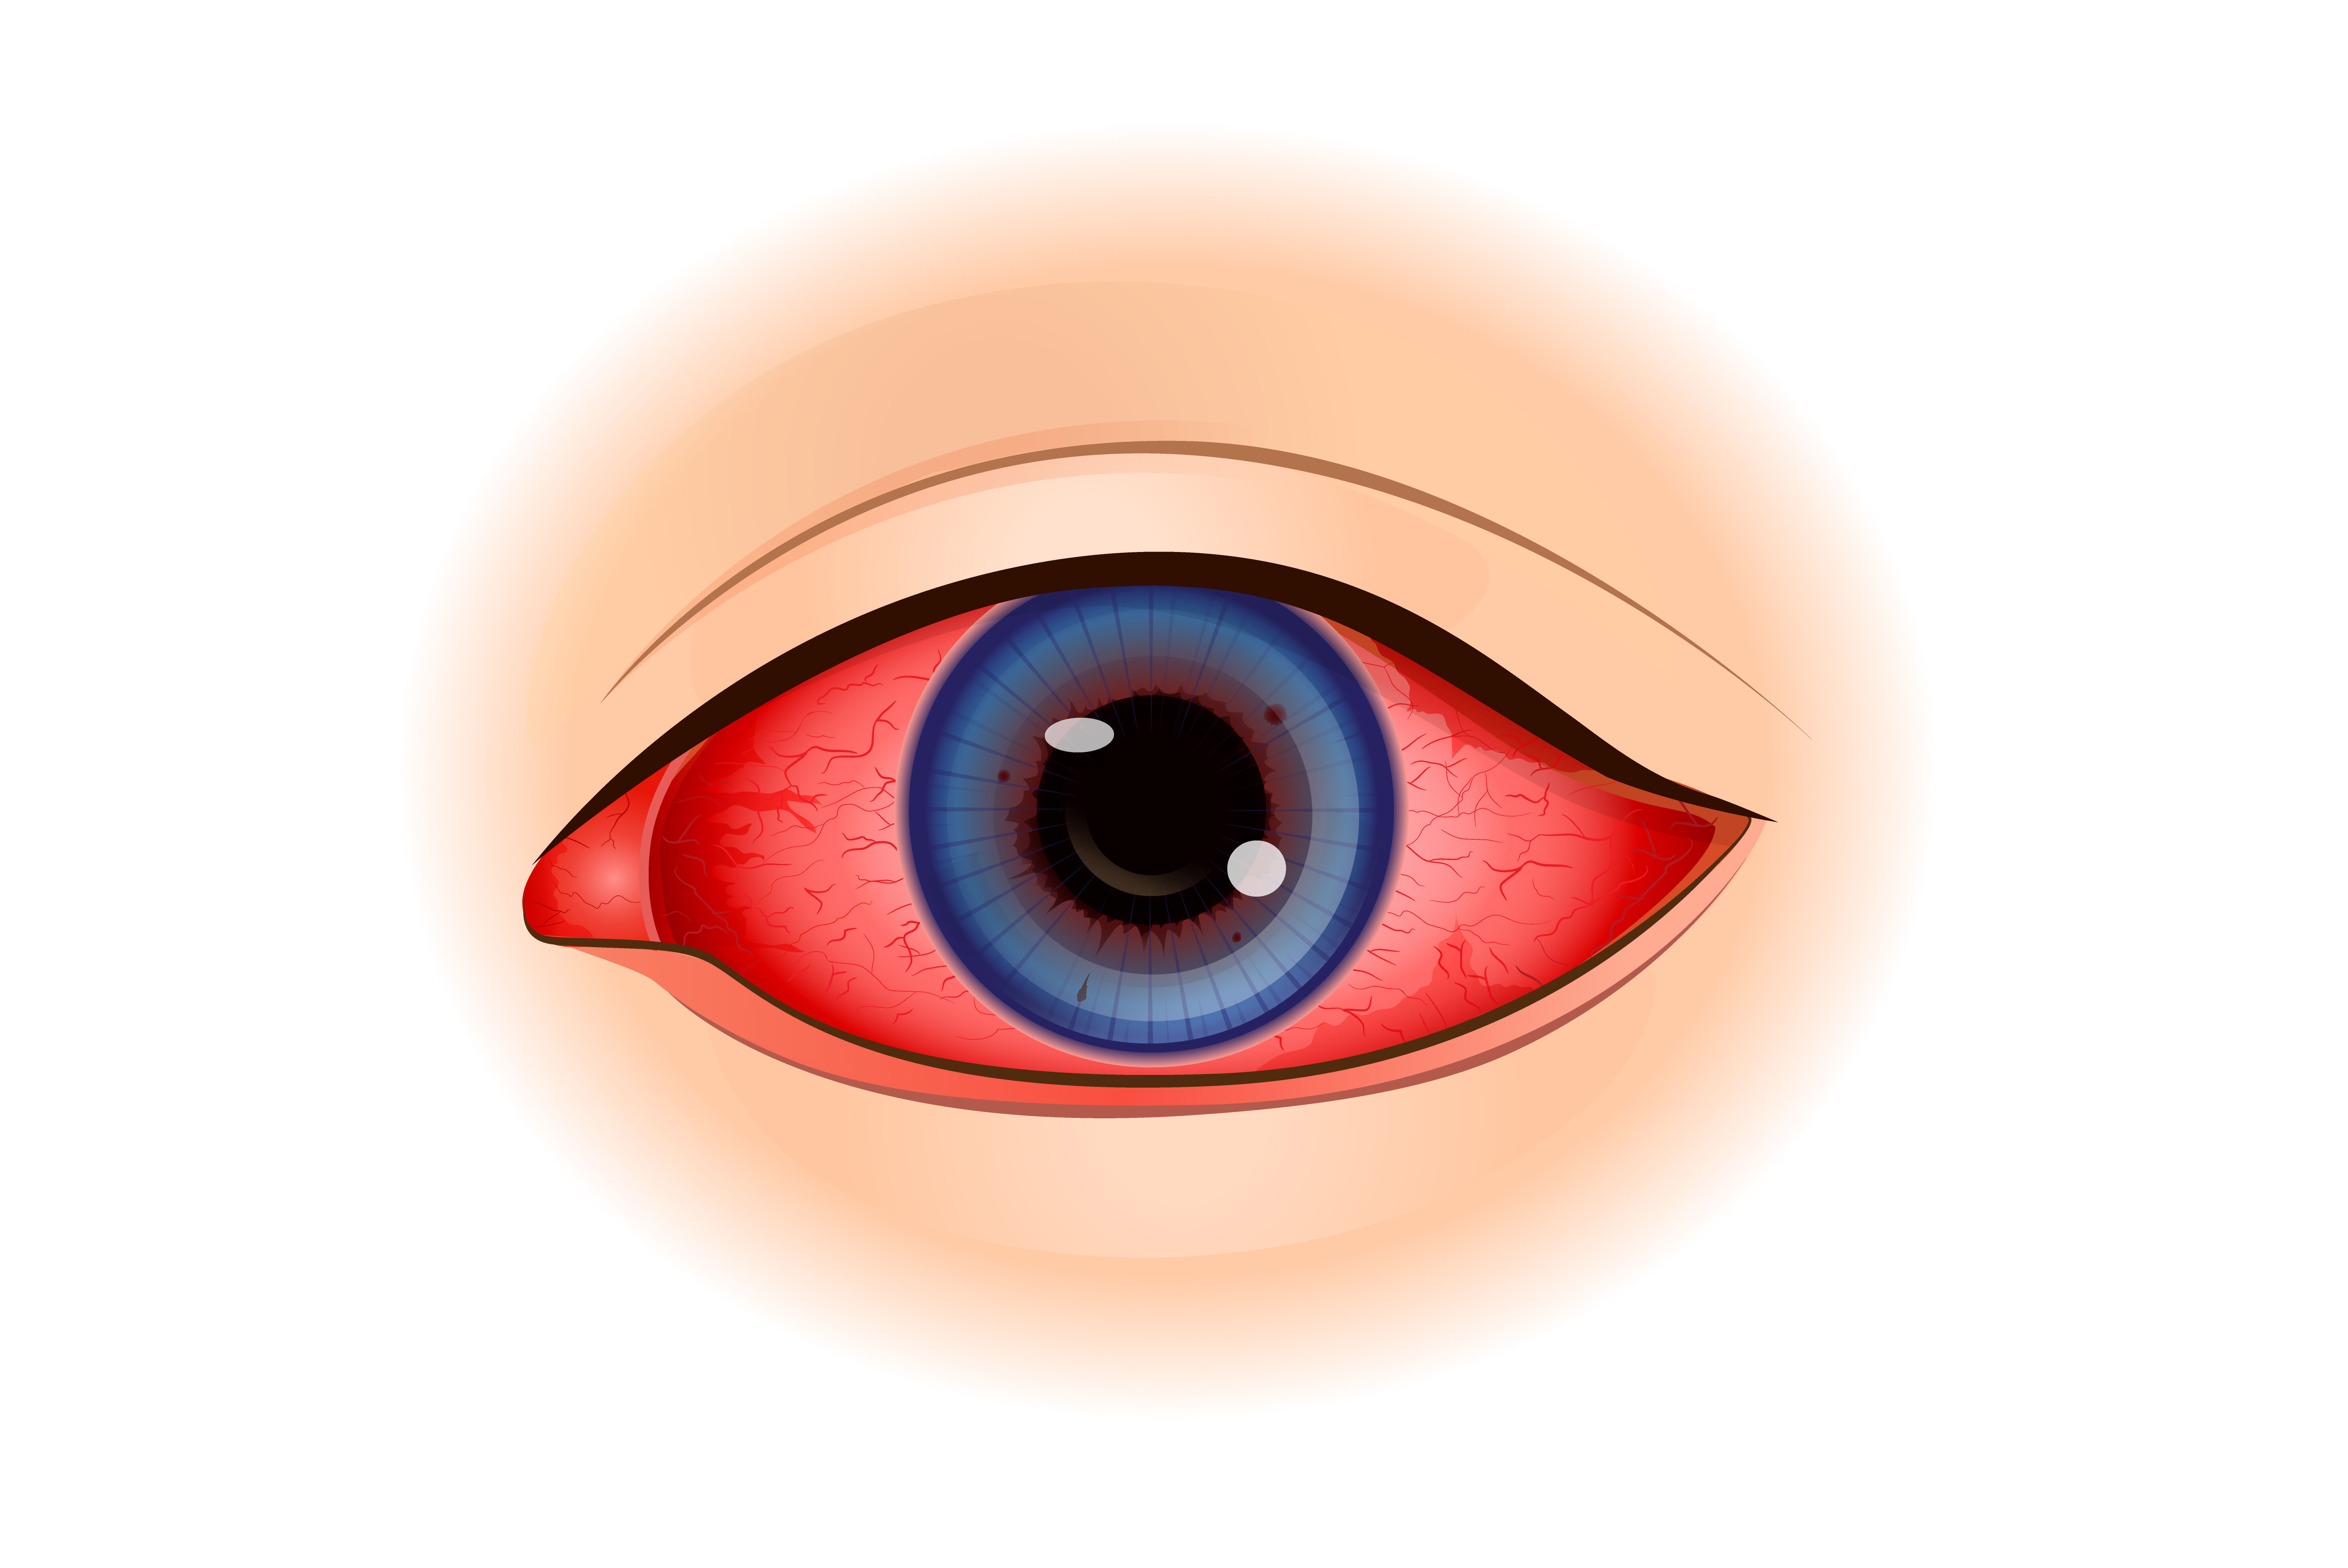 Uveitis is an inflammation